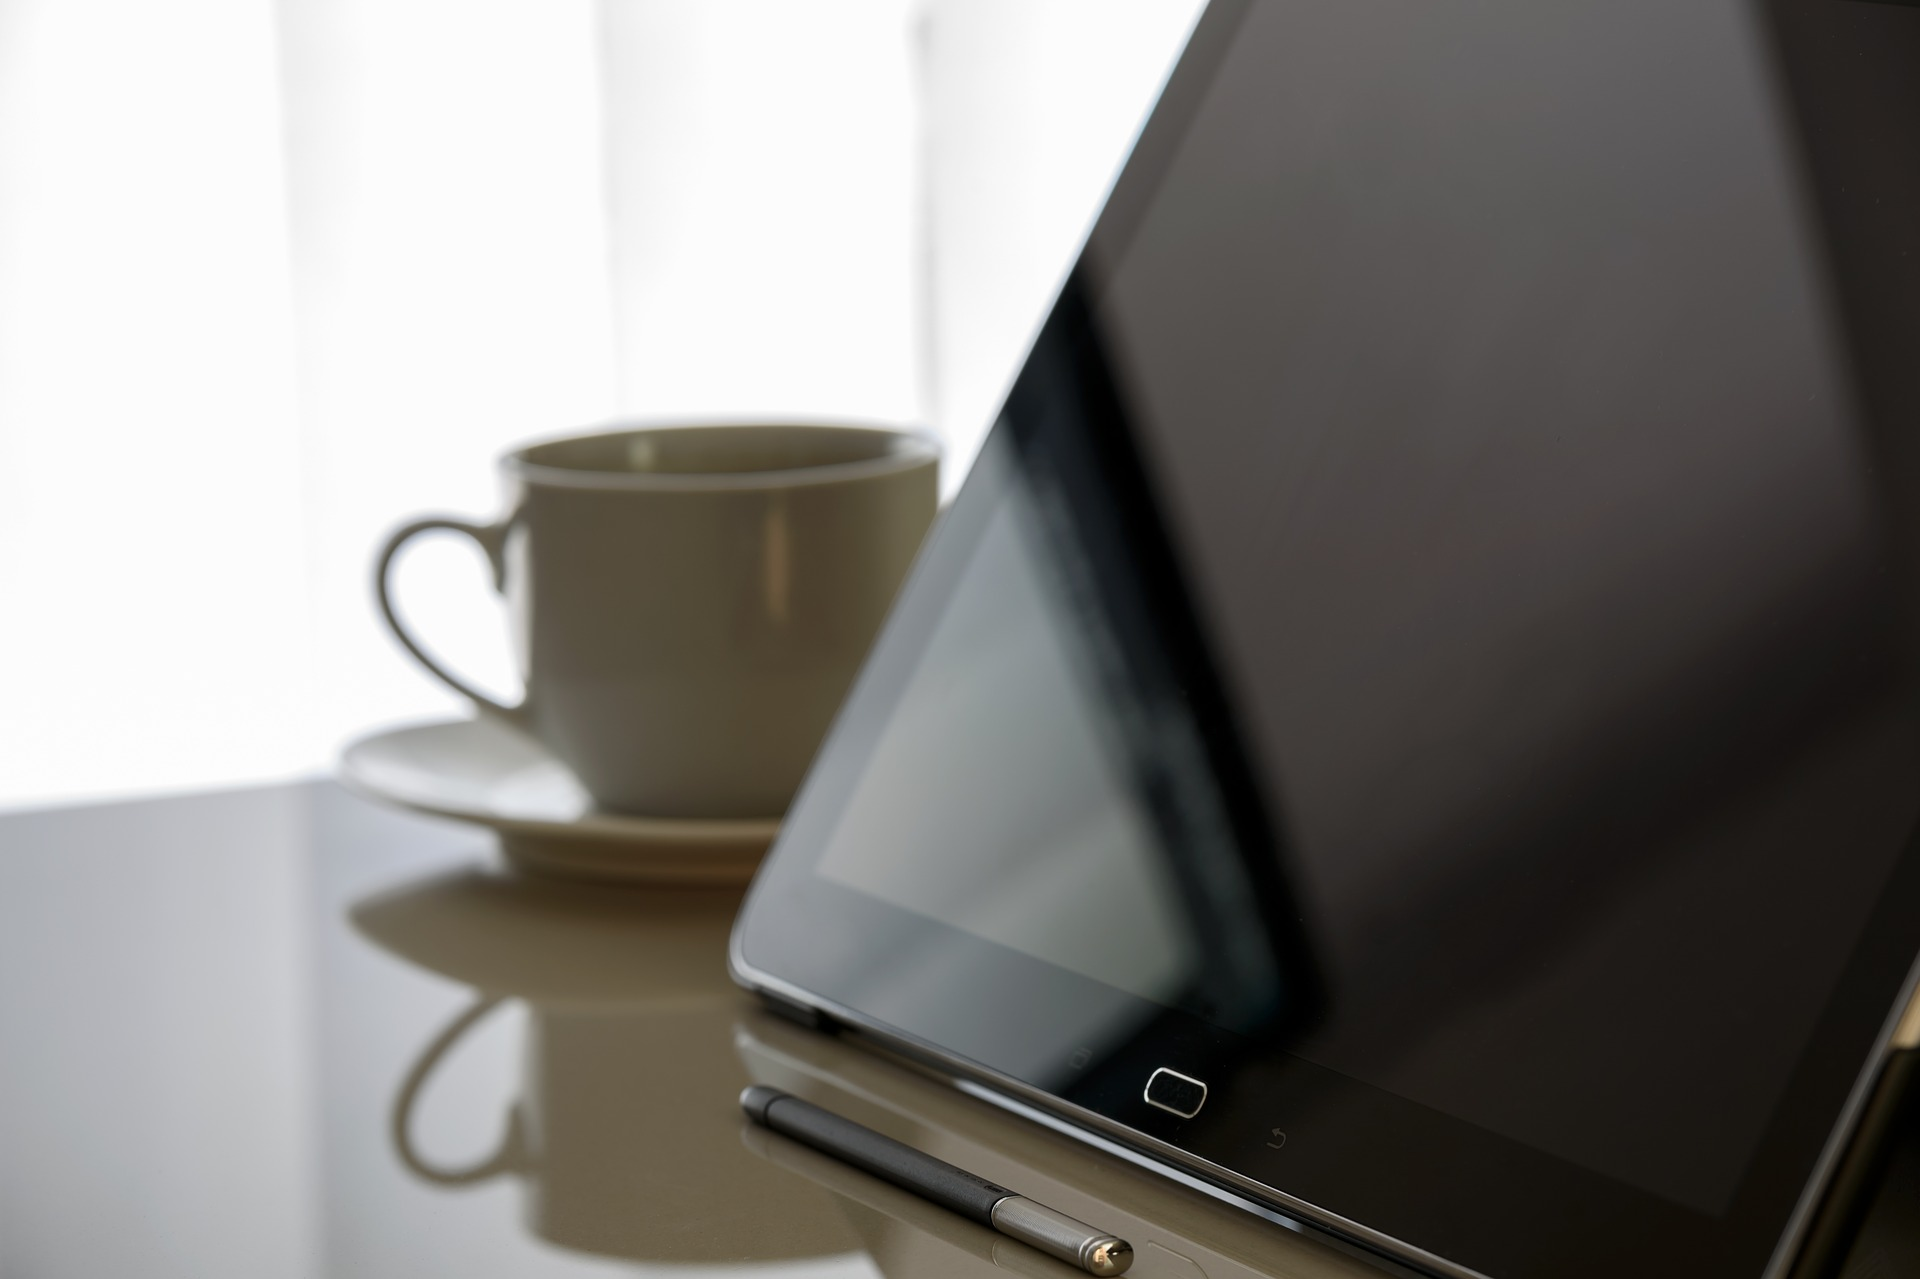 Image used for News link showing a tablet computer on desk next to a coffee cup - ready to read the news